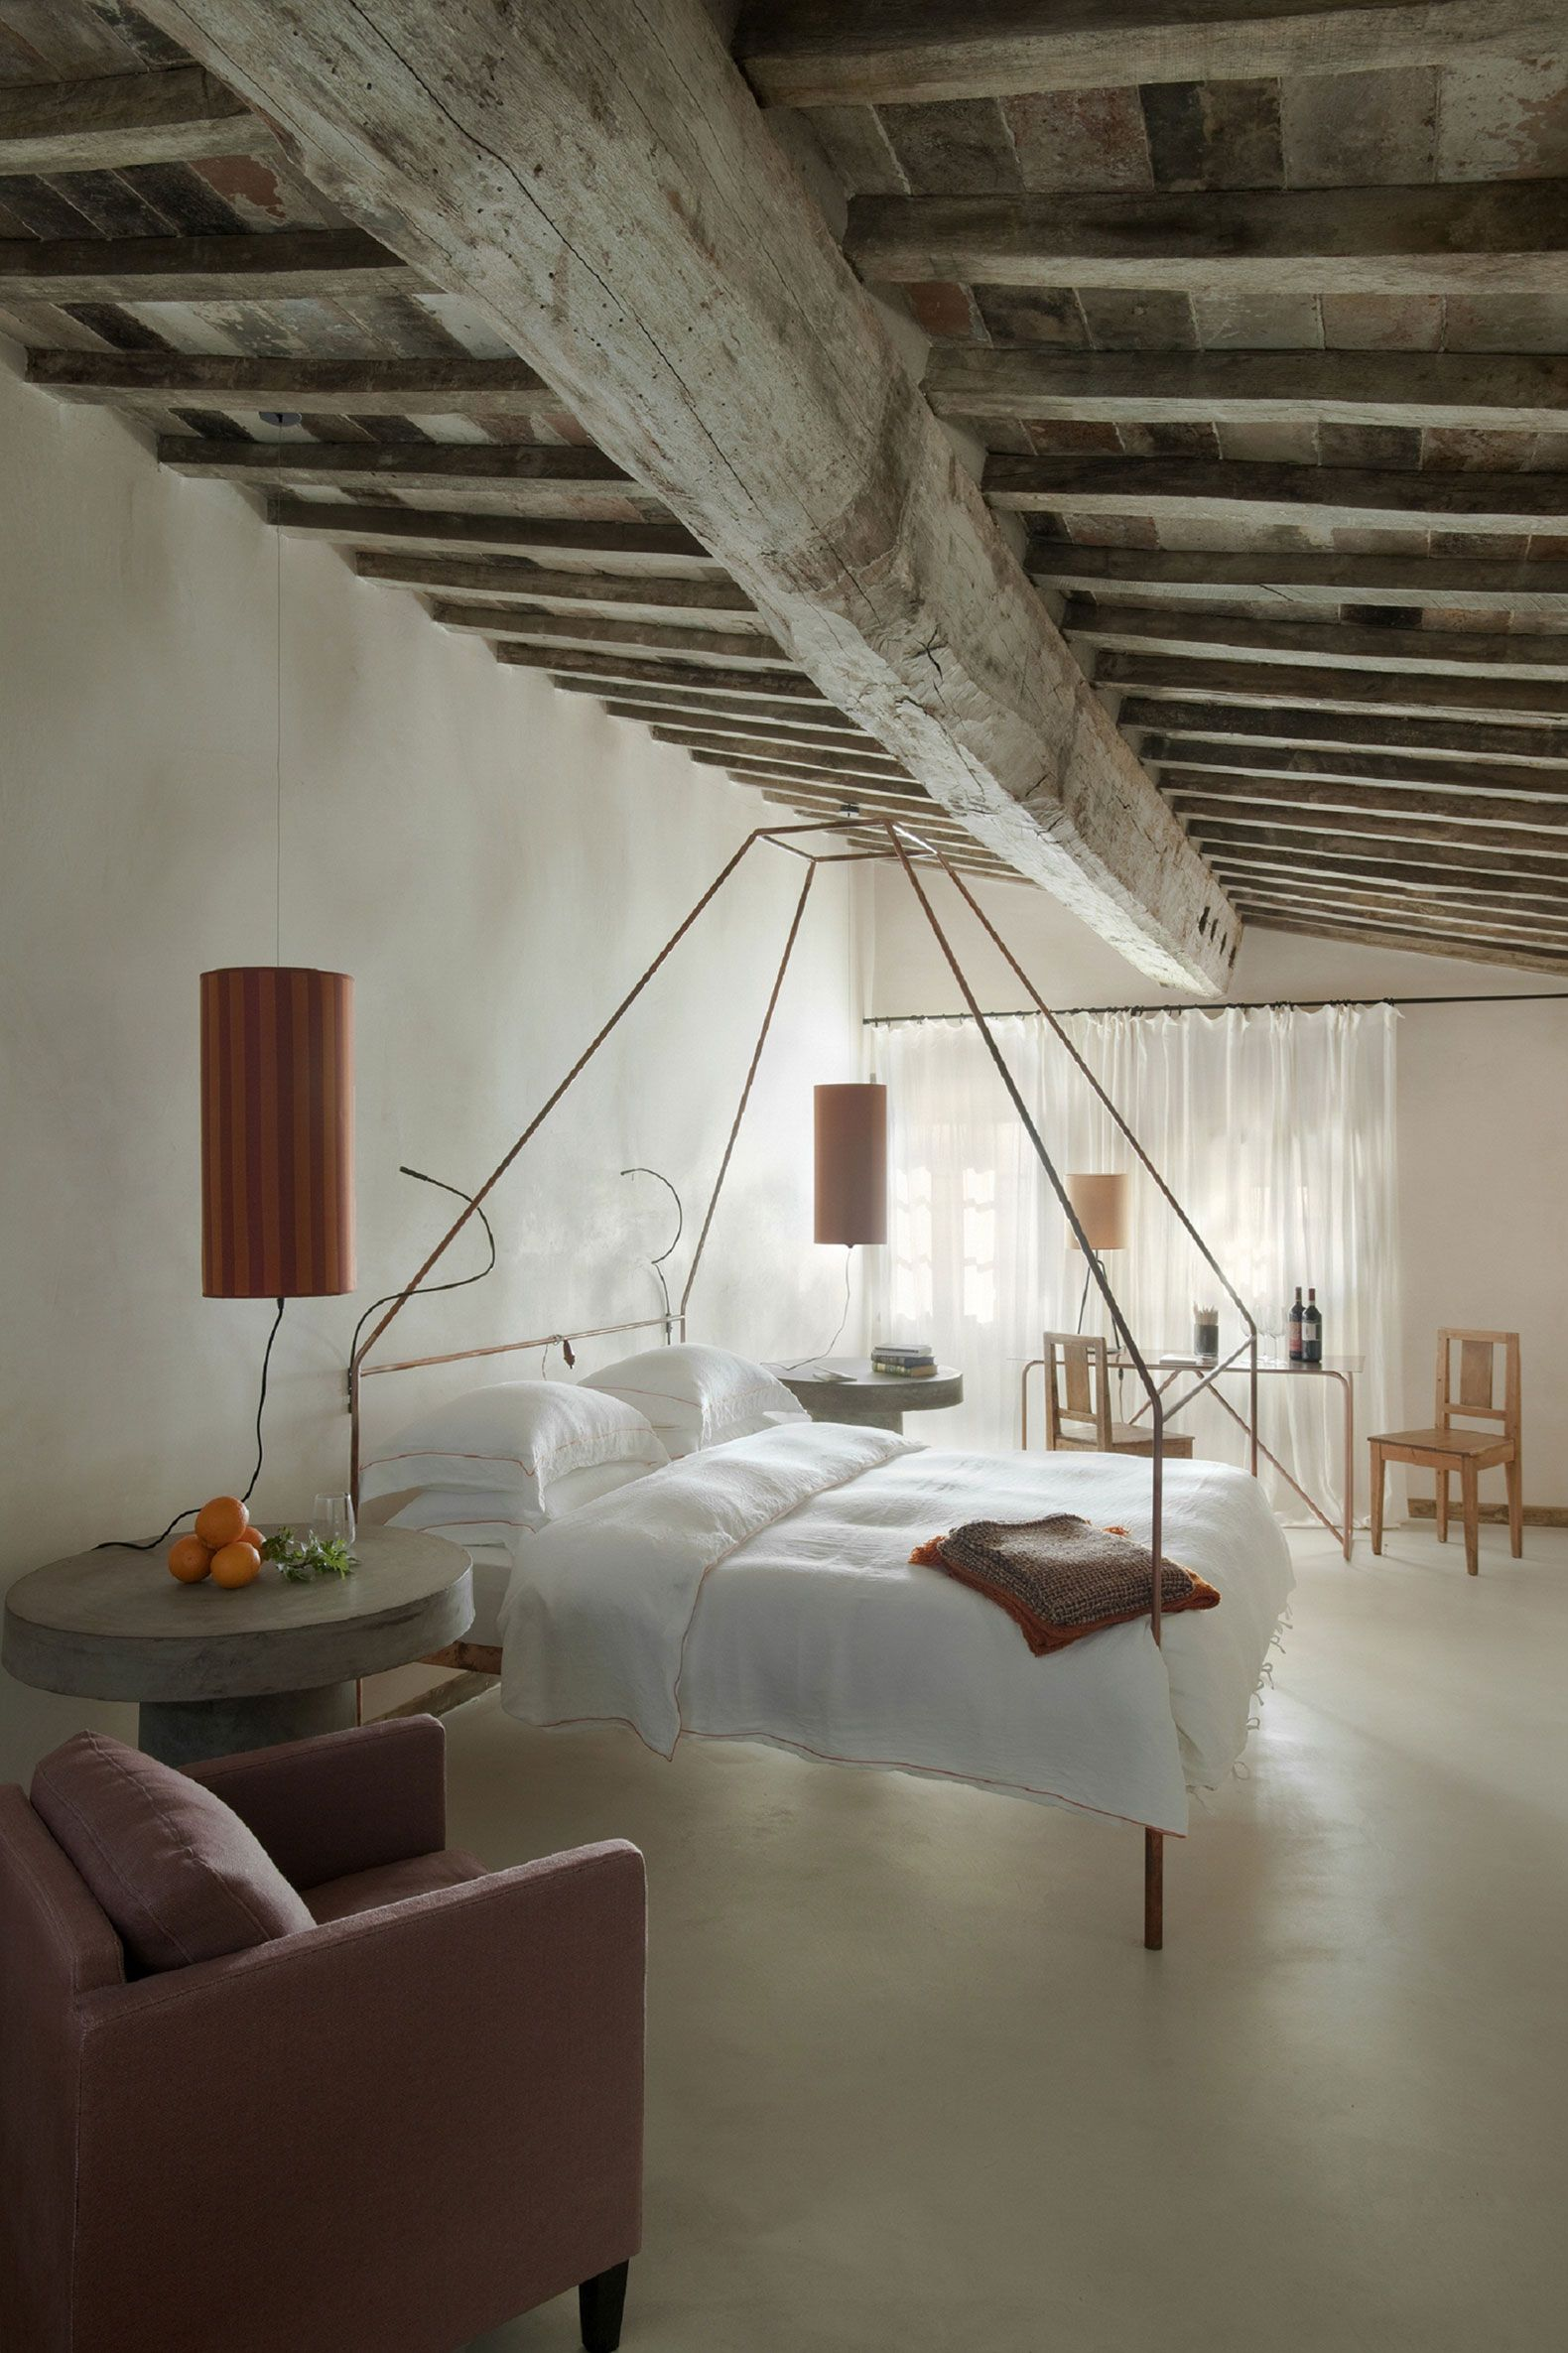 "Monteverdi is a retreat located in Castiglioncello del Trinoro, Italy, and was designed by Ilaria Miani. The structure is surrounded by the stunning Tuscan countryside, and its interior makes use of the rustic element of the exposed ceiling beams and stone walls to add character. Monteverdi by Ilaria Miani: ""Nestled in the historic heart of the Val d'Orcia region and lying dormant for the past few decades, the village of.."